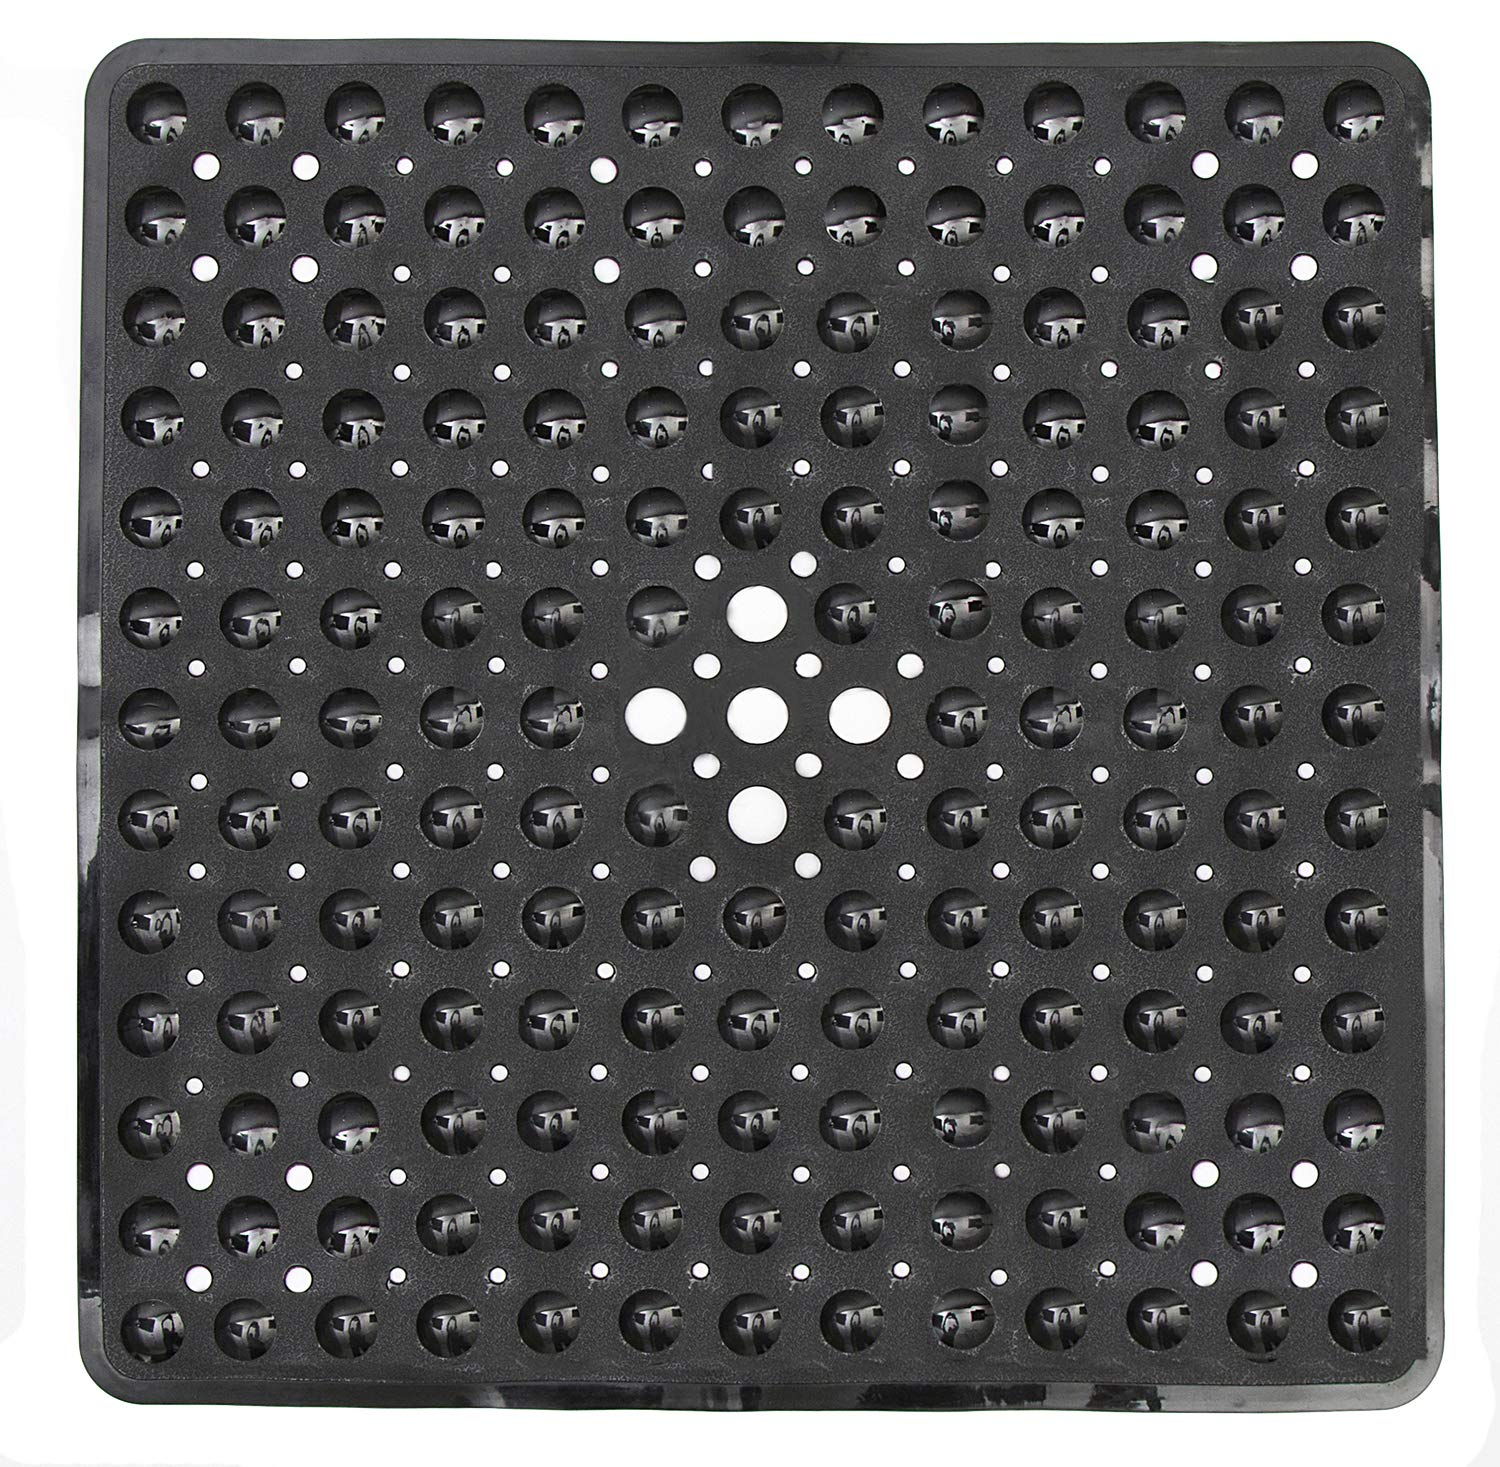 Yimobra Original Bath Shower Tub Mat Square 21x21 Inch Machine Washable Antibacterial BPA Latex Phthalate Free Bathroom Mats with Drain Holes Suction Cups Black Present Wall Hooks 3 Pack